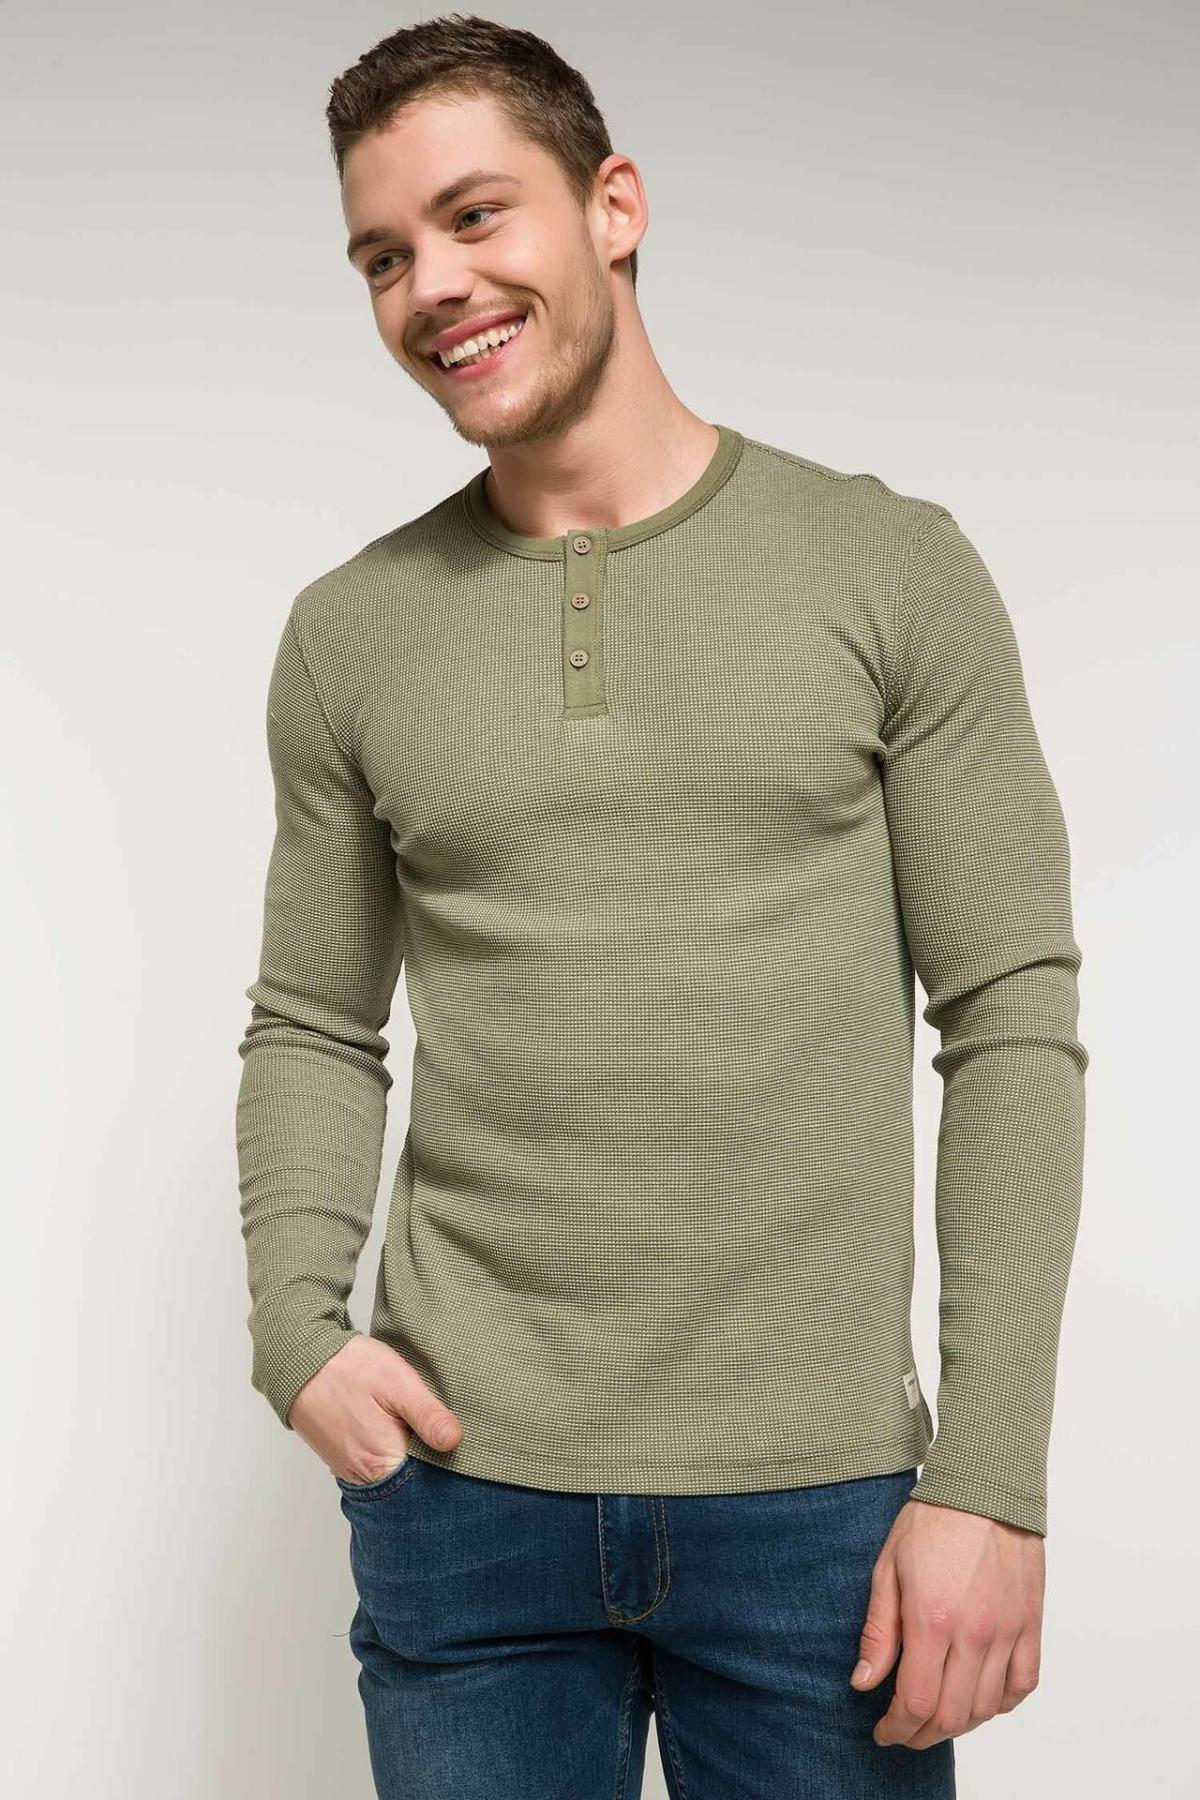 DeFacto Fashion Mens Solid Color Slim Pullovers Casual Joker Simple Pullovers Tops Leisure Mens Autumn New-I6530AZ18SM